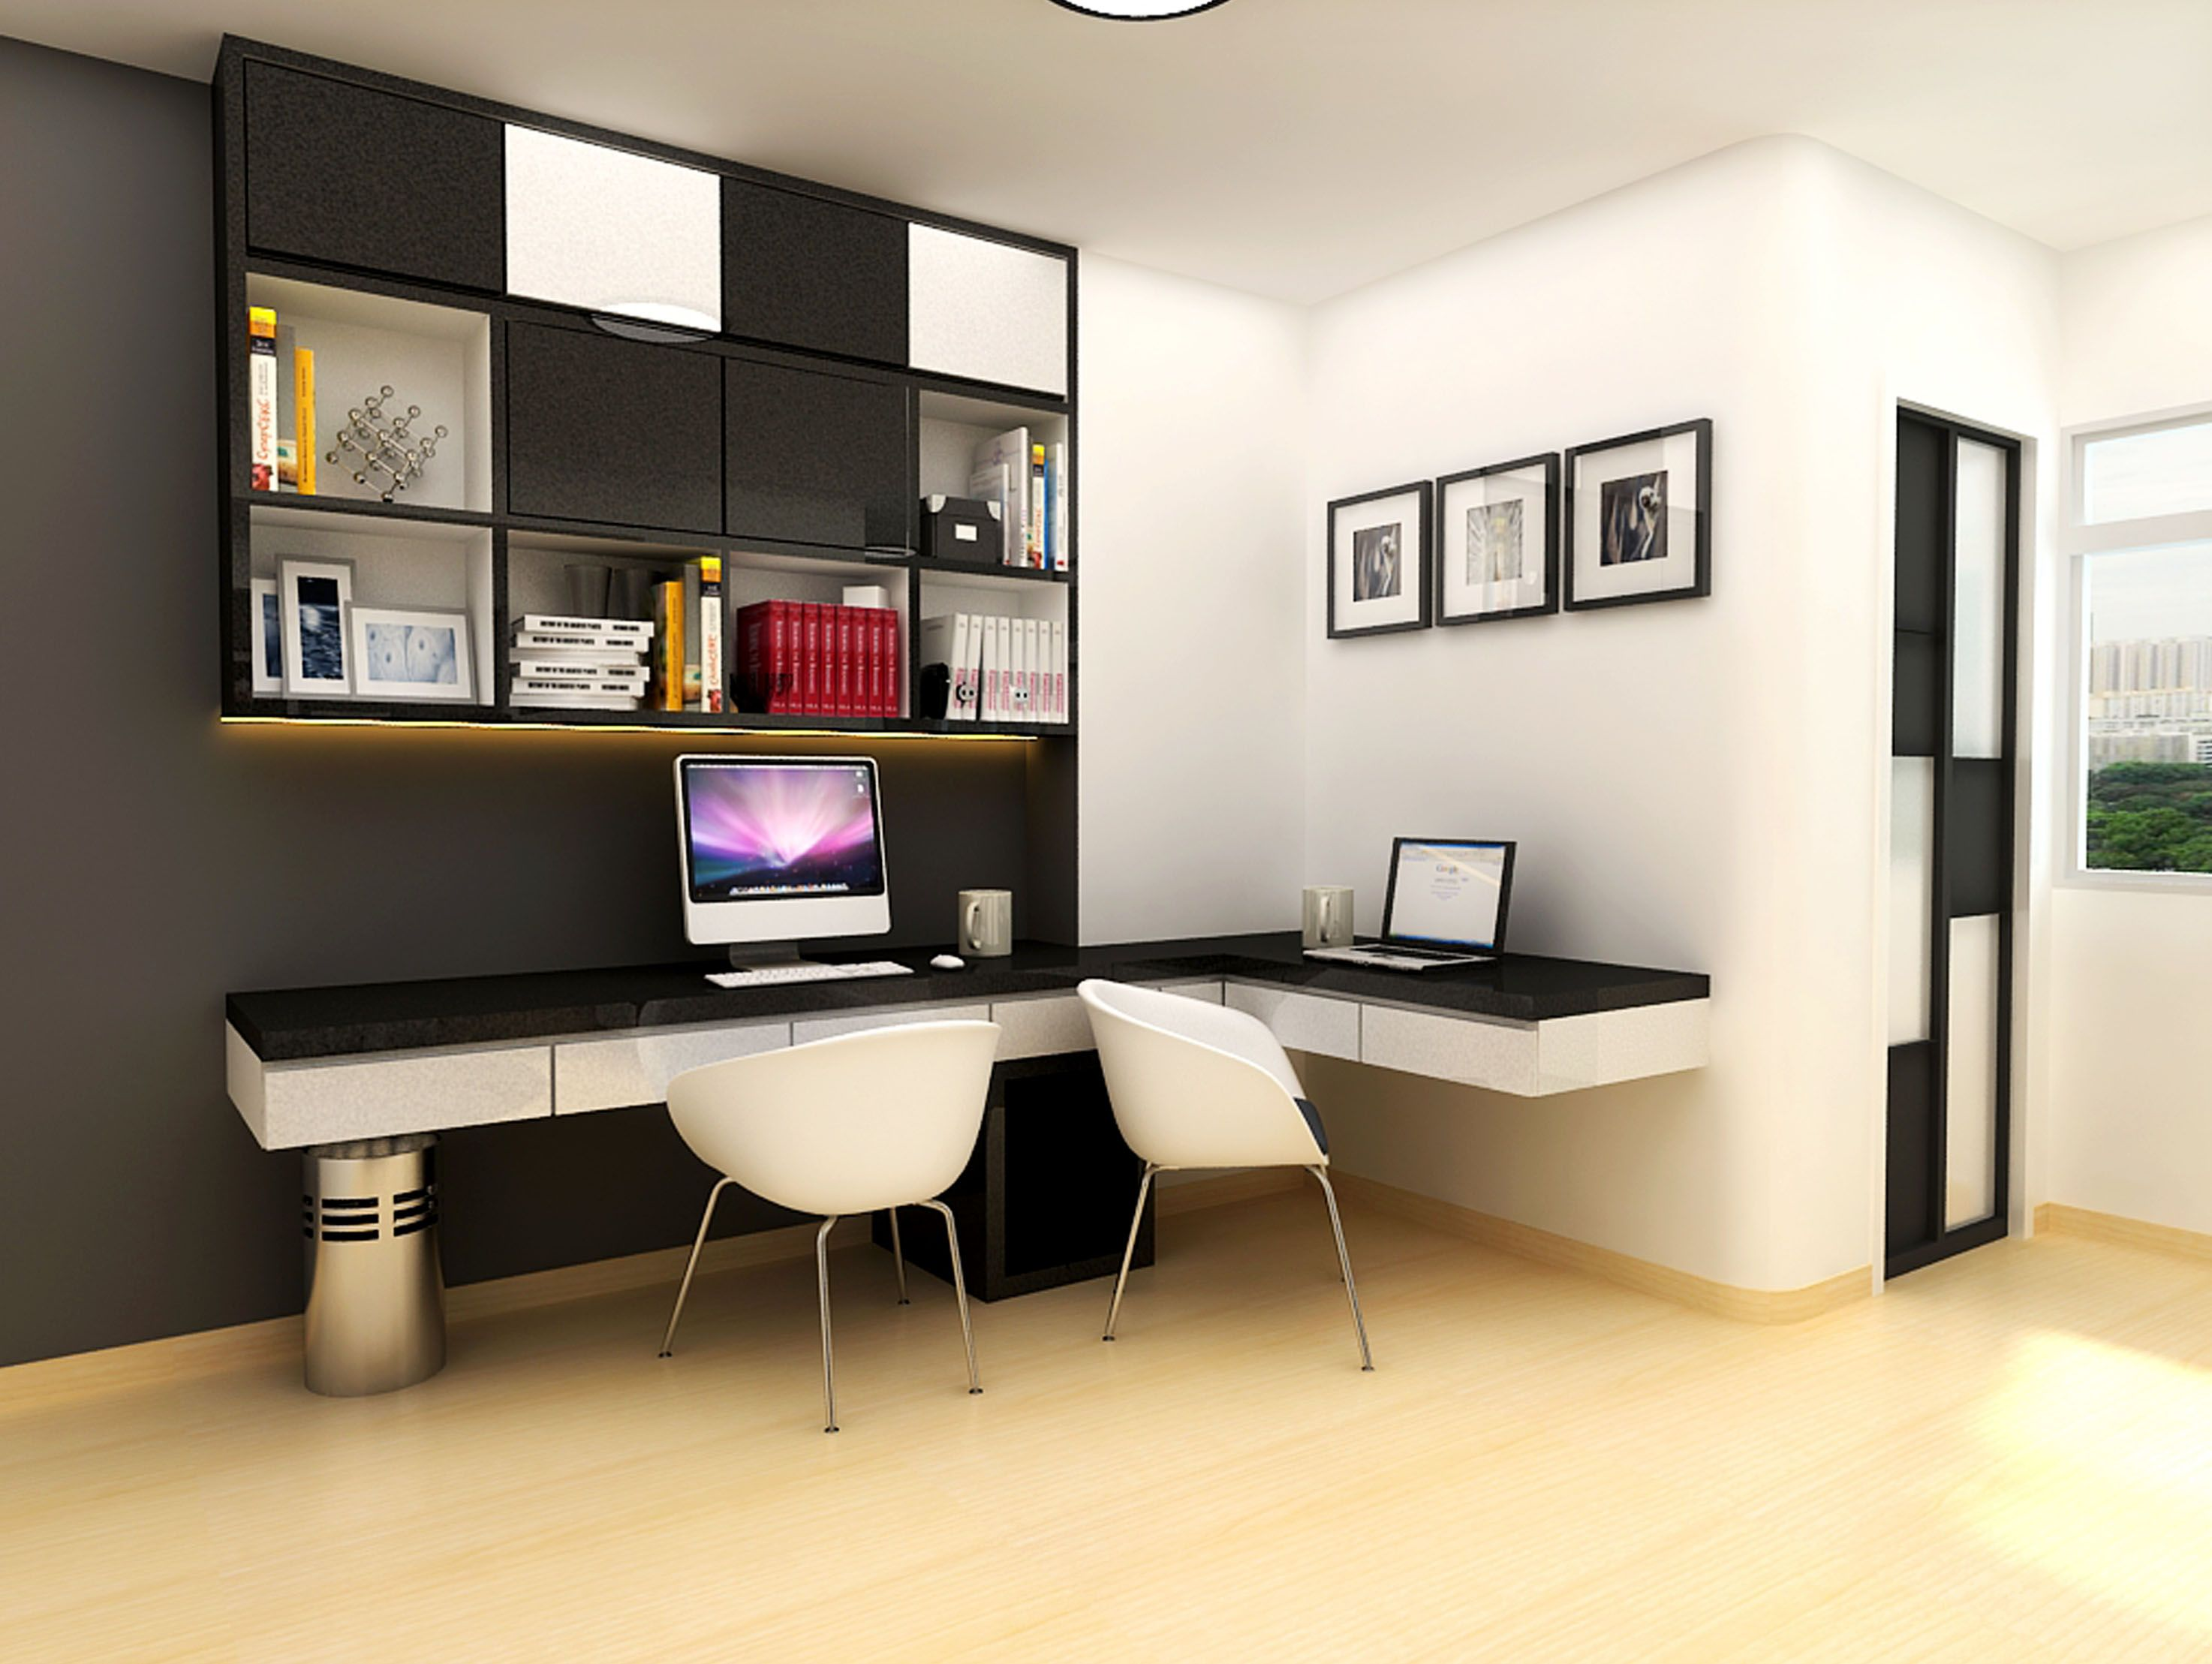 Modern Study Room Design Home Study Room With Gym Pinterest Modern Study Rooms Study